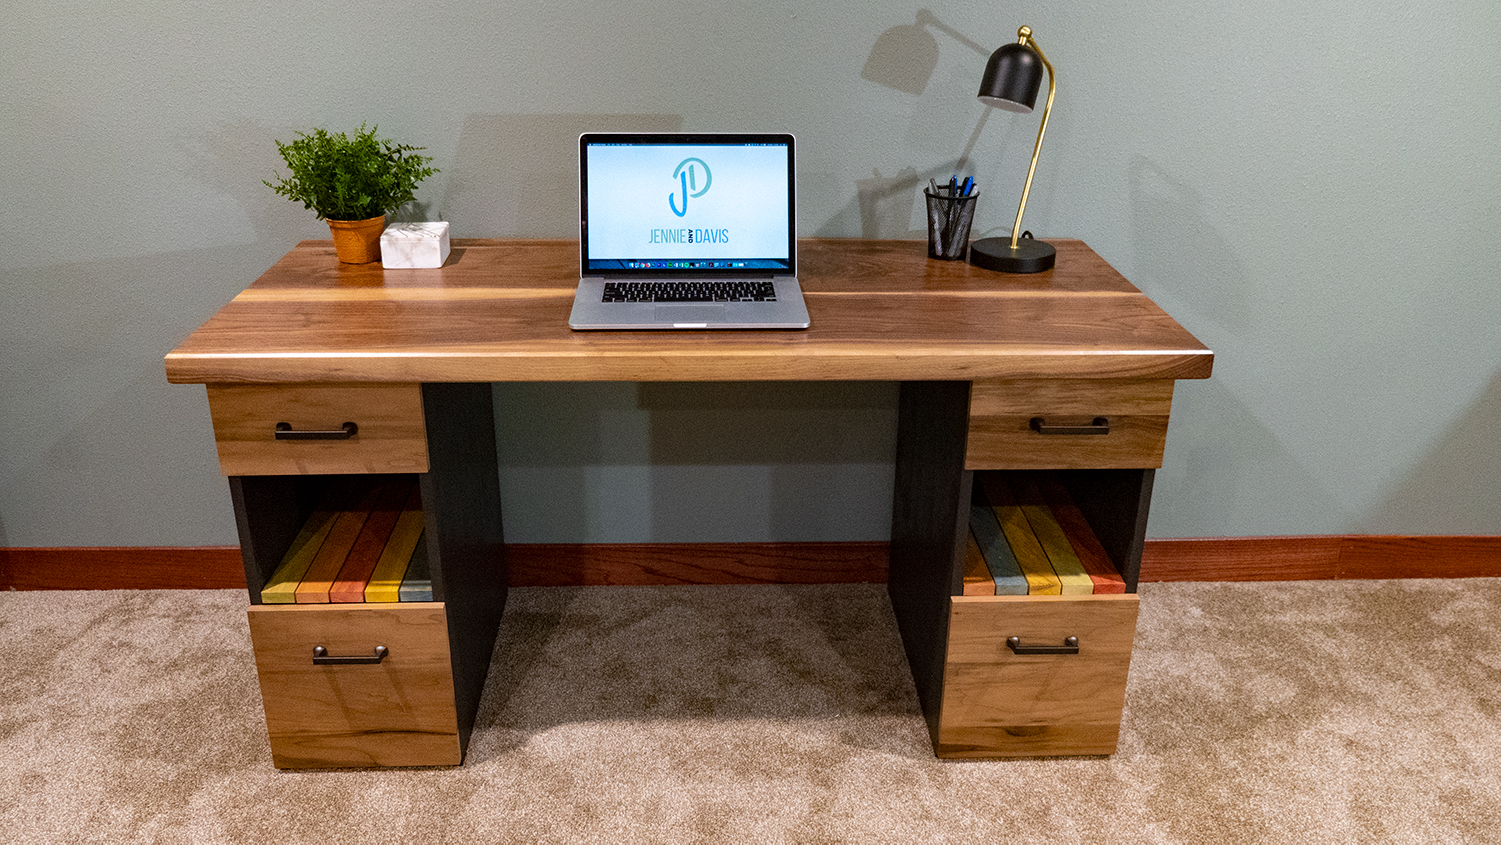 How to Sell a Desk to a Friend